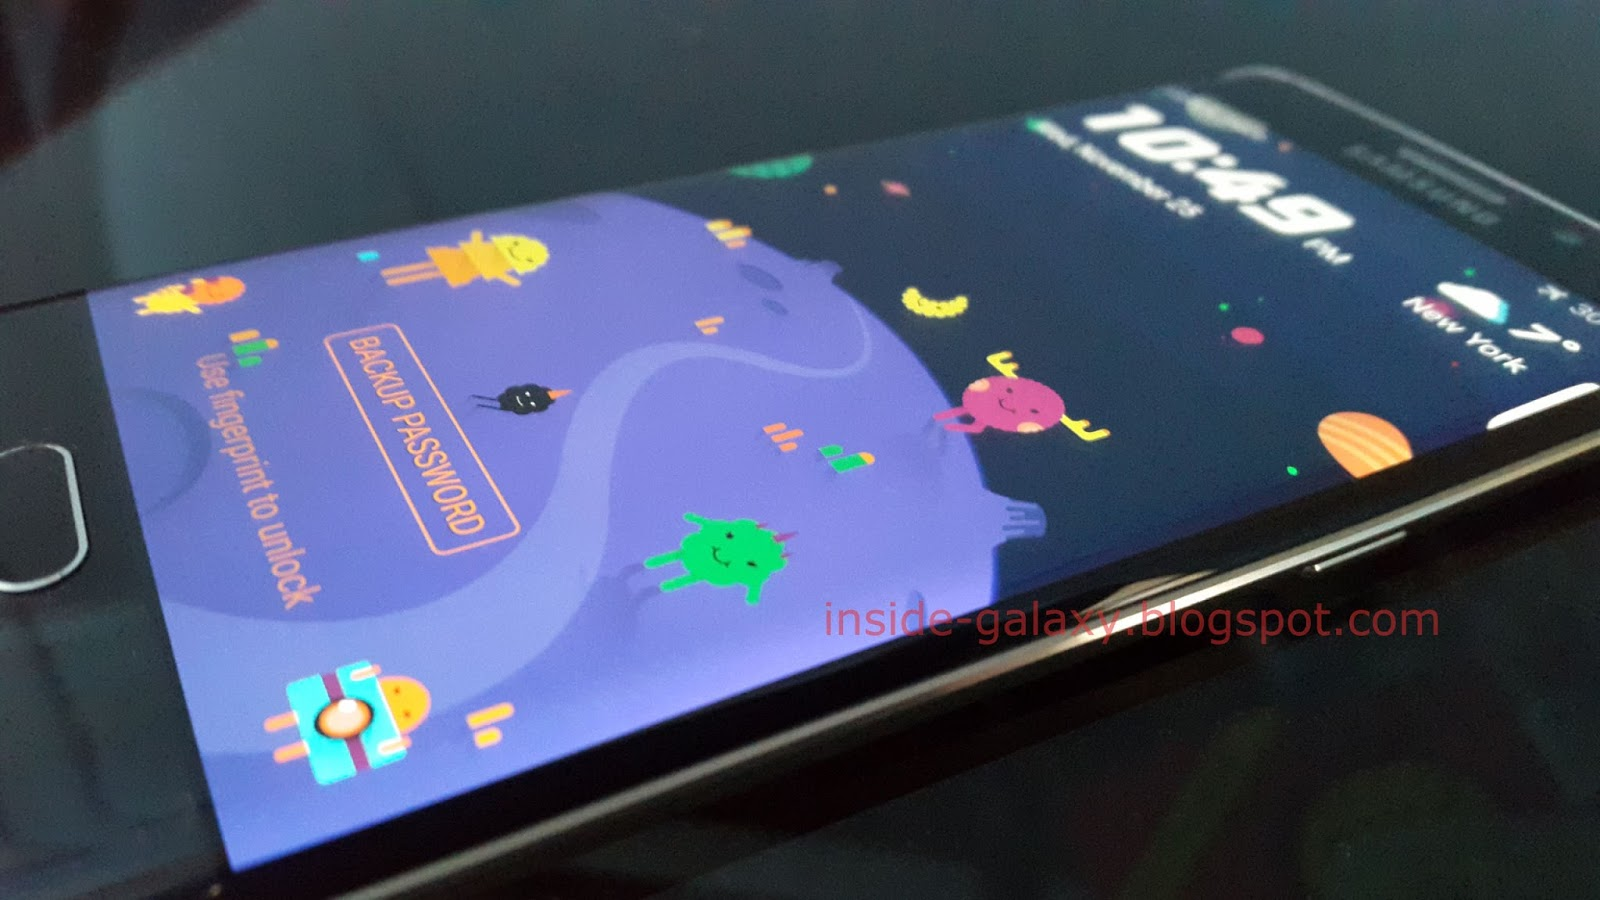 Samsung Galaxy S6 Edge How To Change Themes In Android 5 1 1 Lollipop